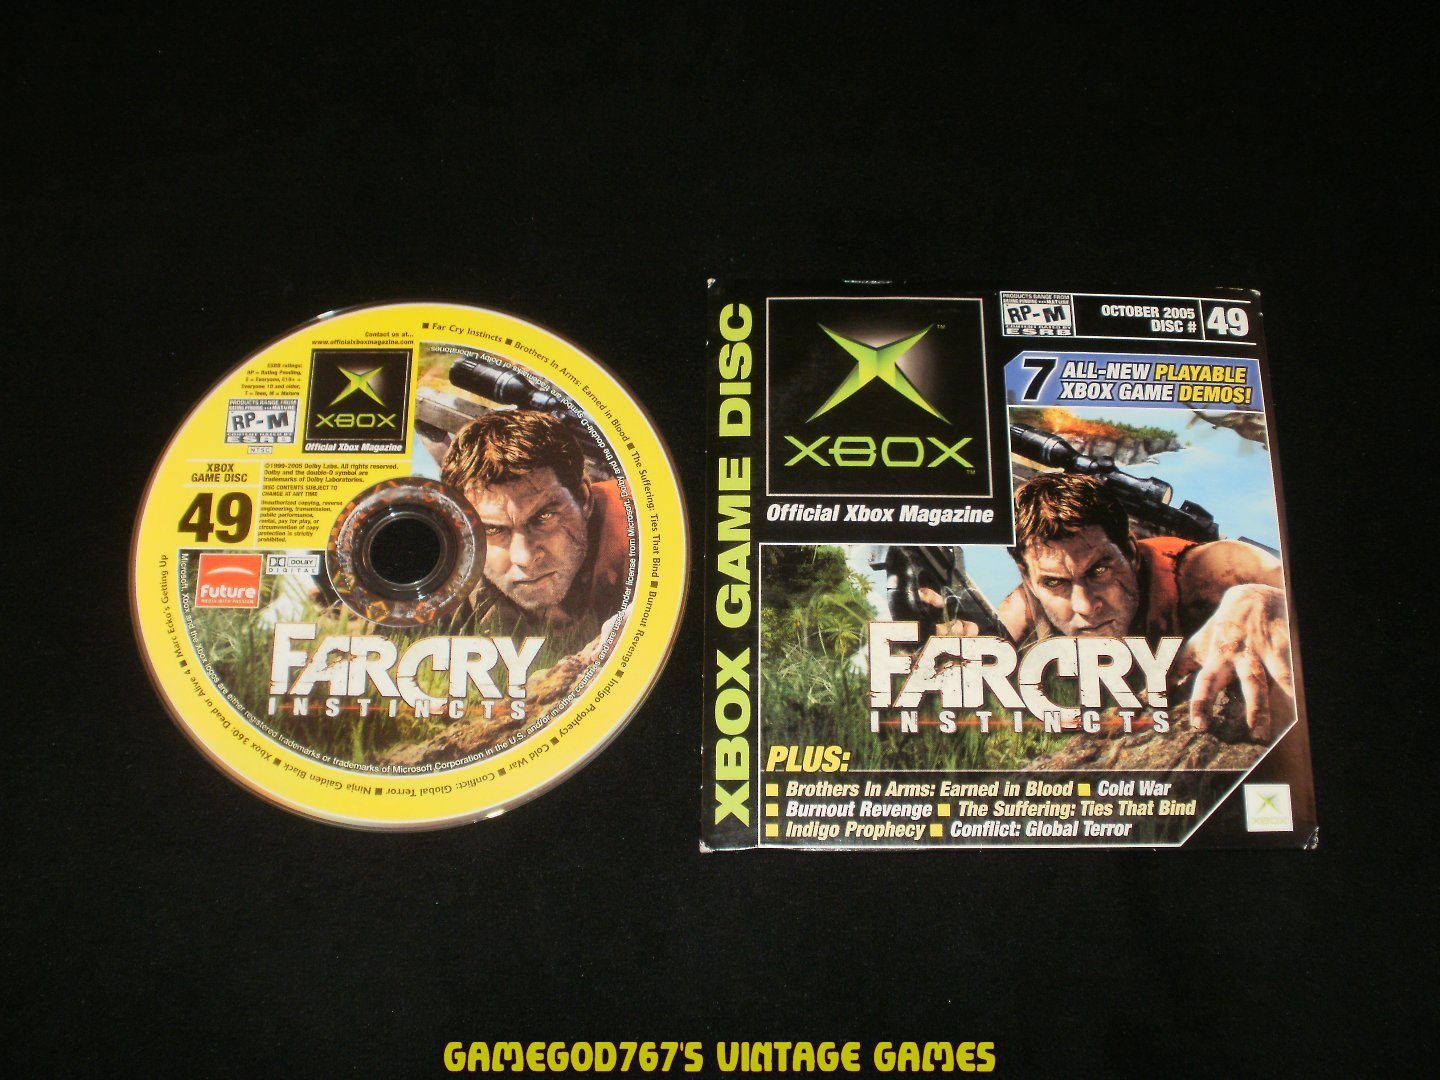 Official Xbox Magazine Demo Disc - Number 49, October 2005